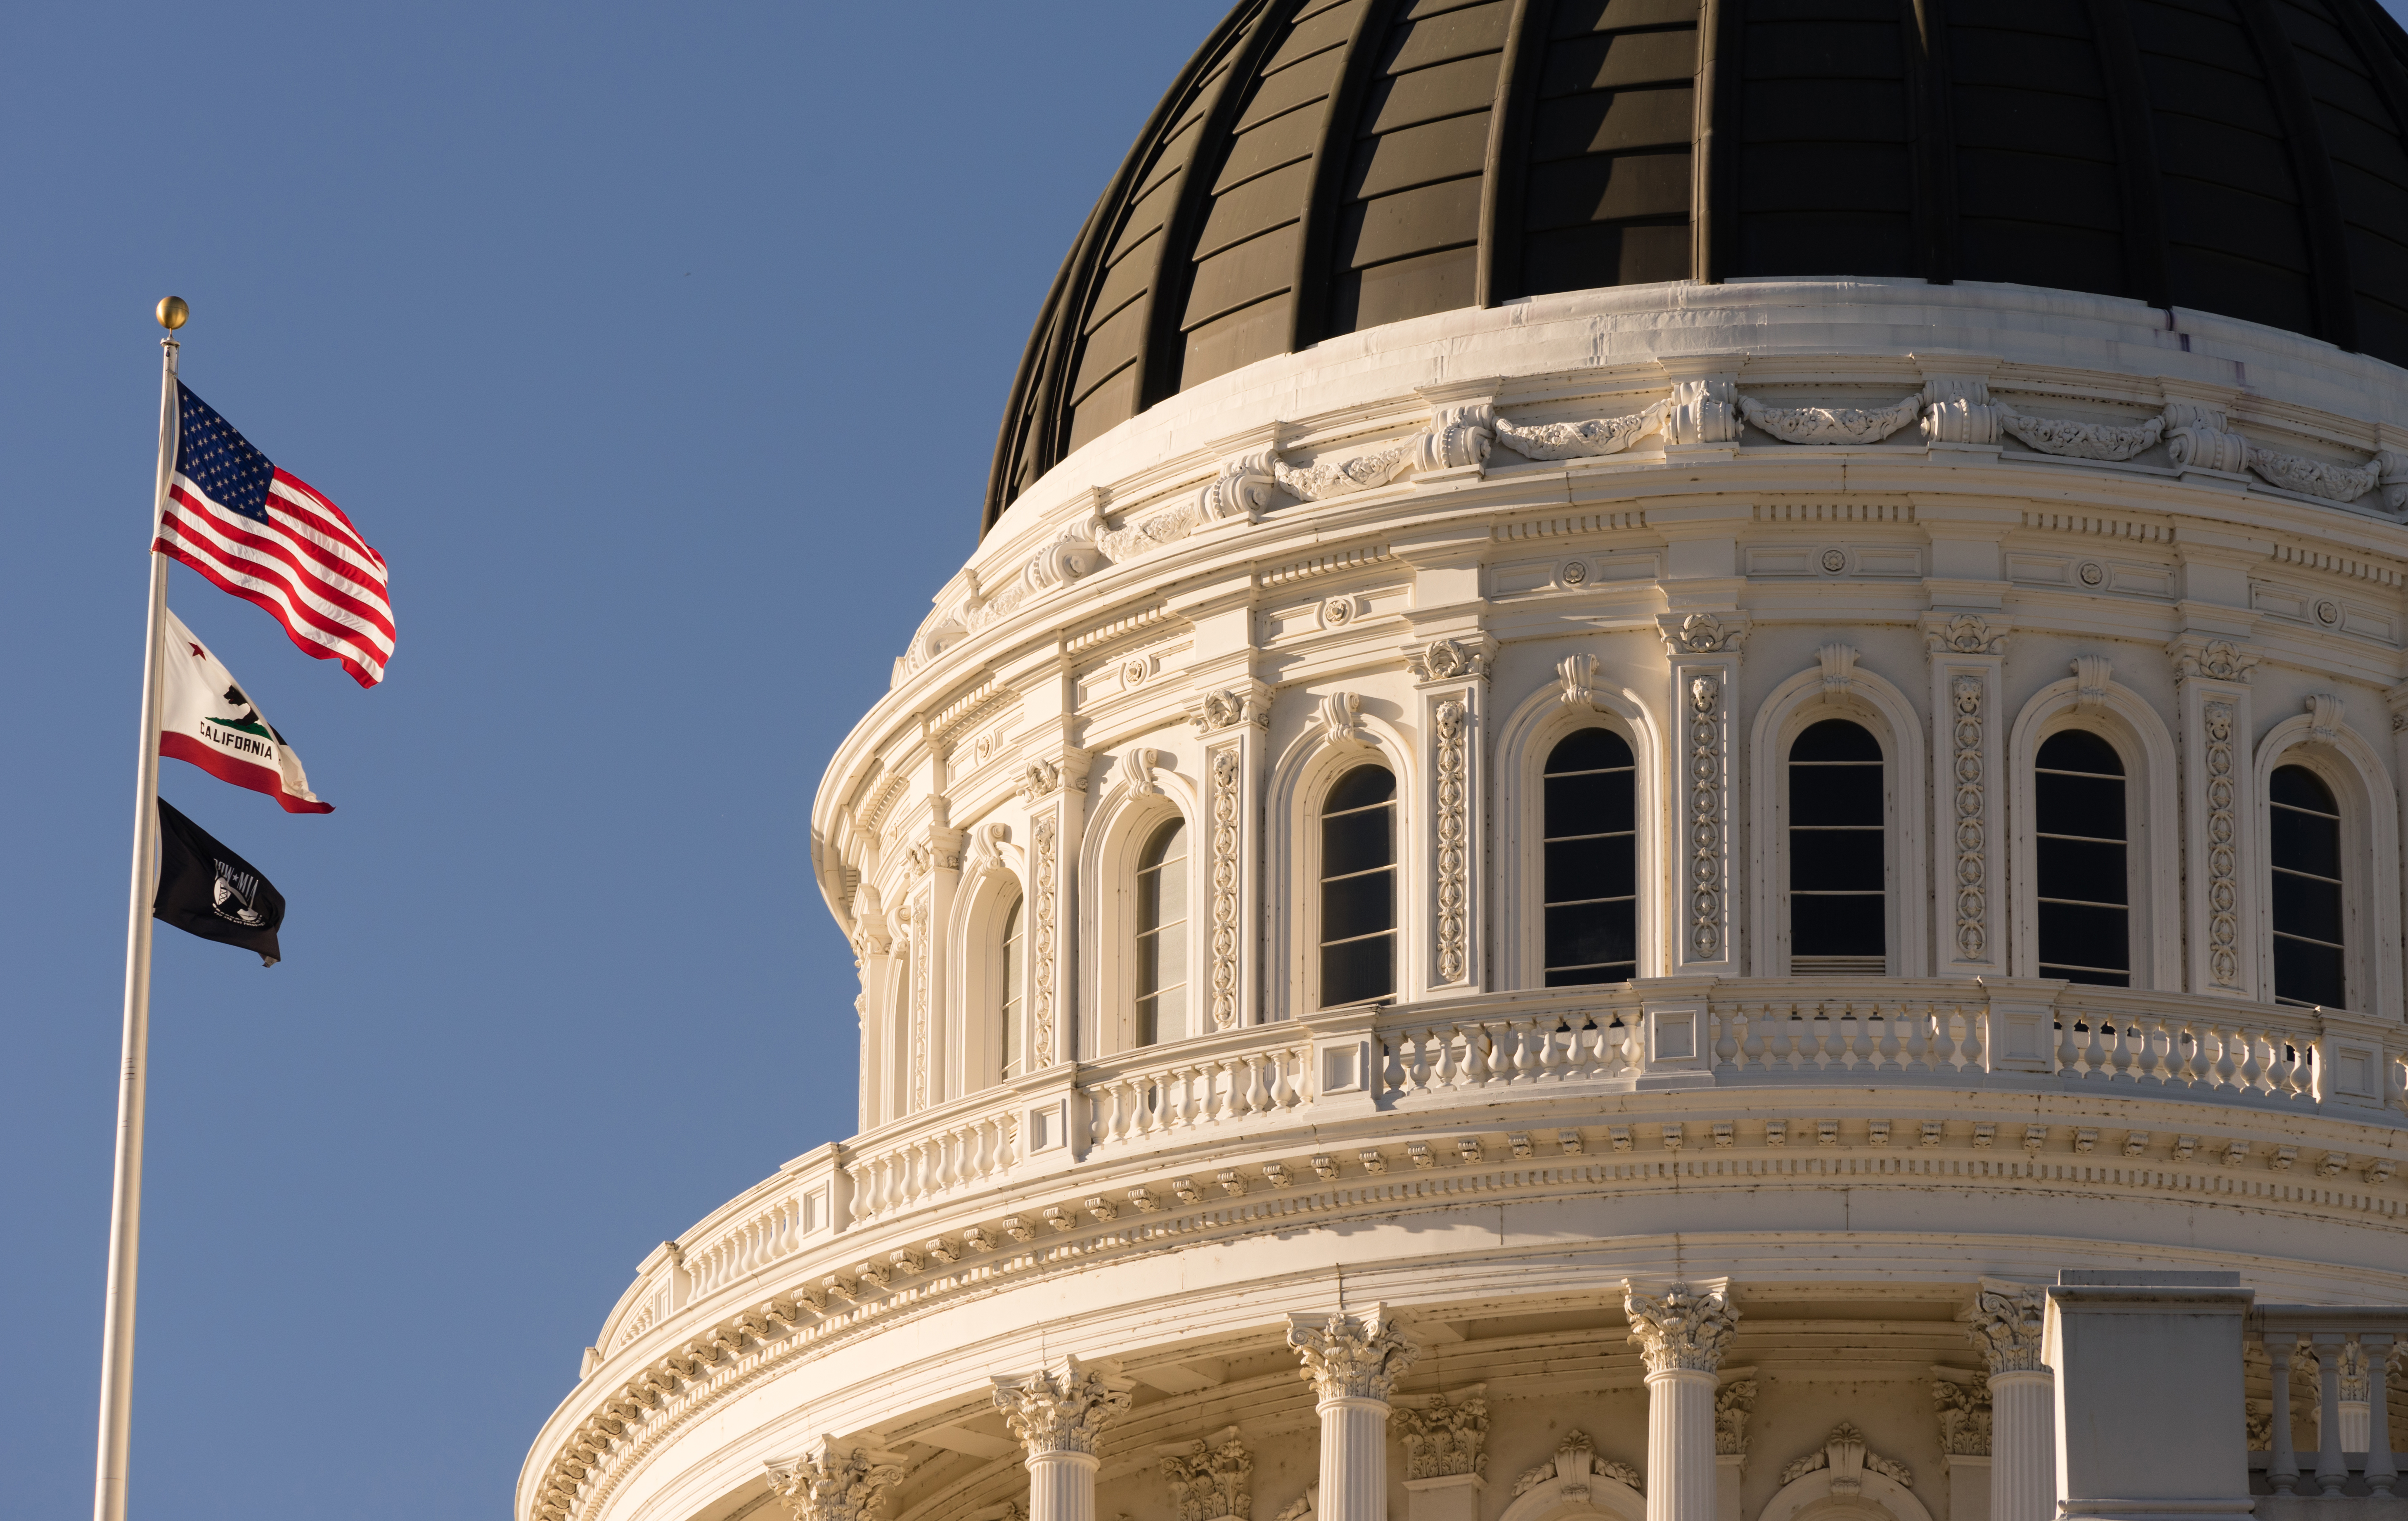 State Capitol takes FOIA Requests